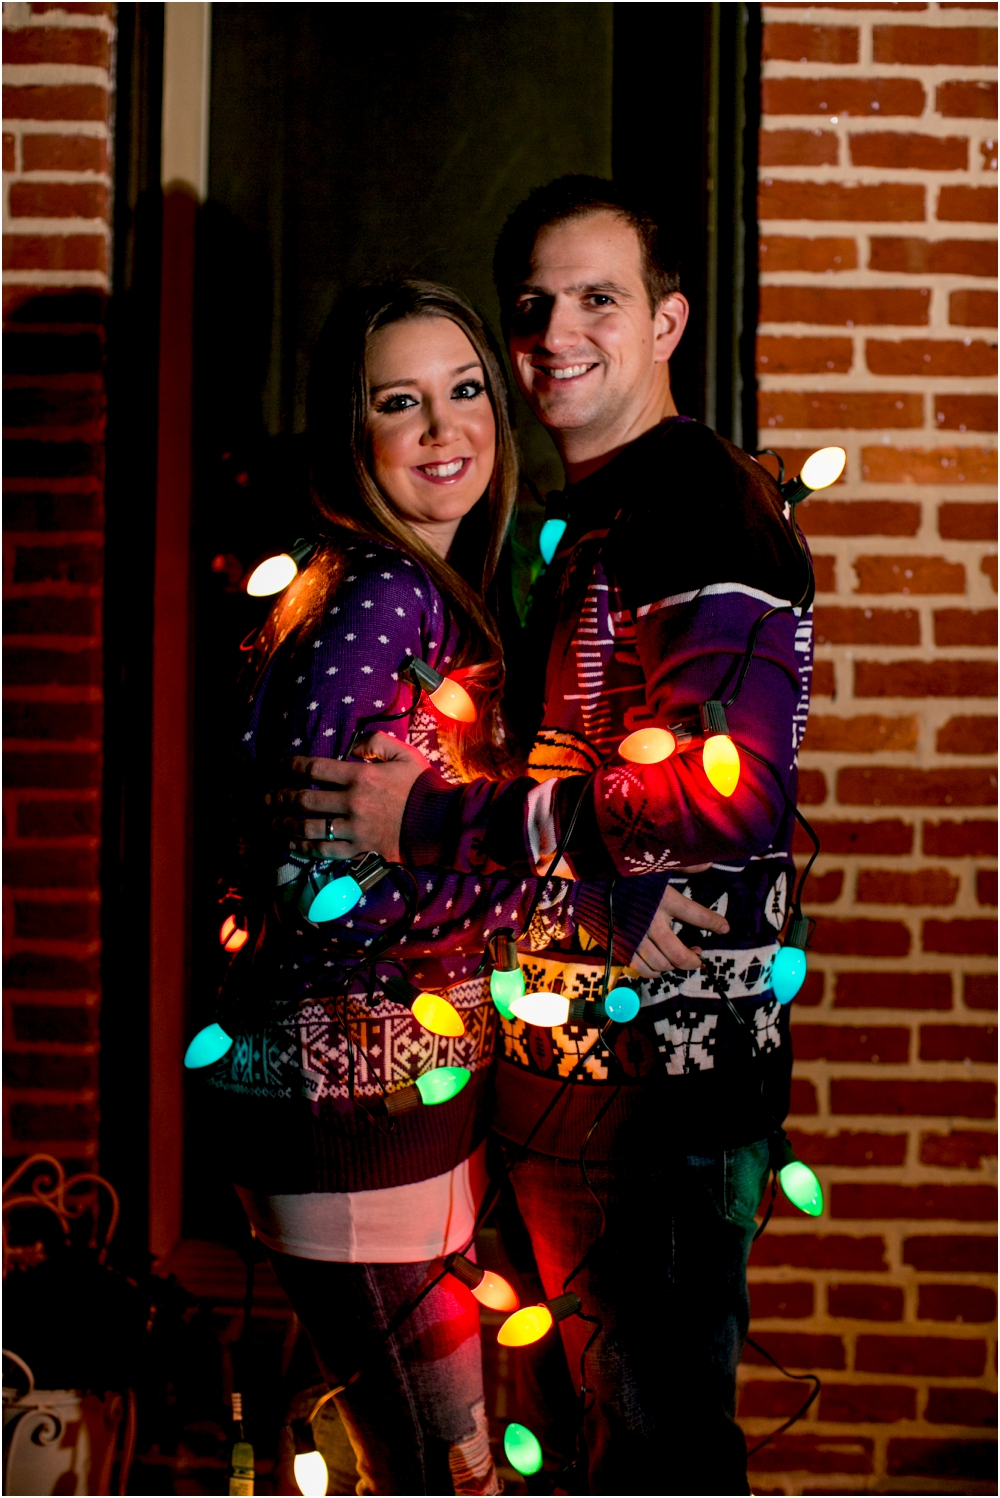 punch vigliotti baltimore holiday shoot baltimore living radiant photography_0003.jpg